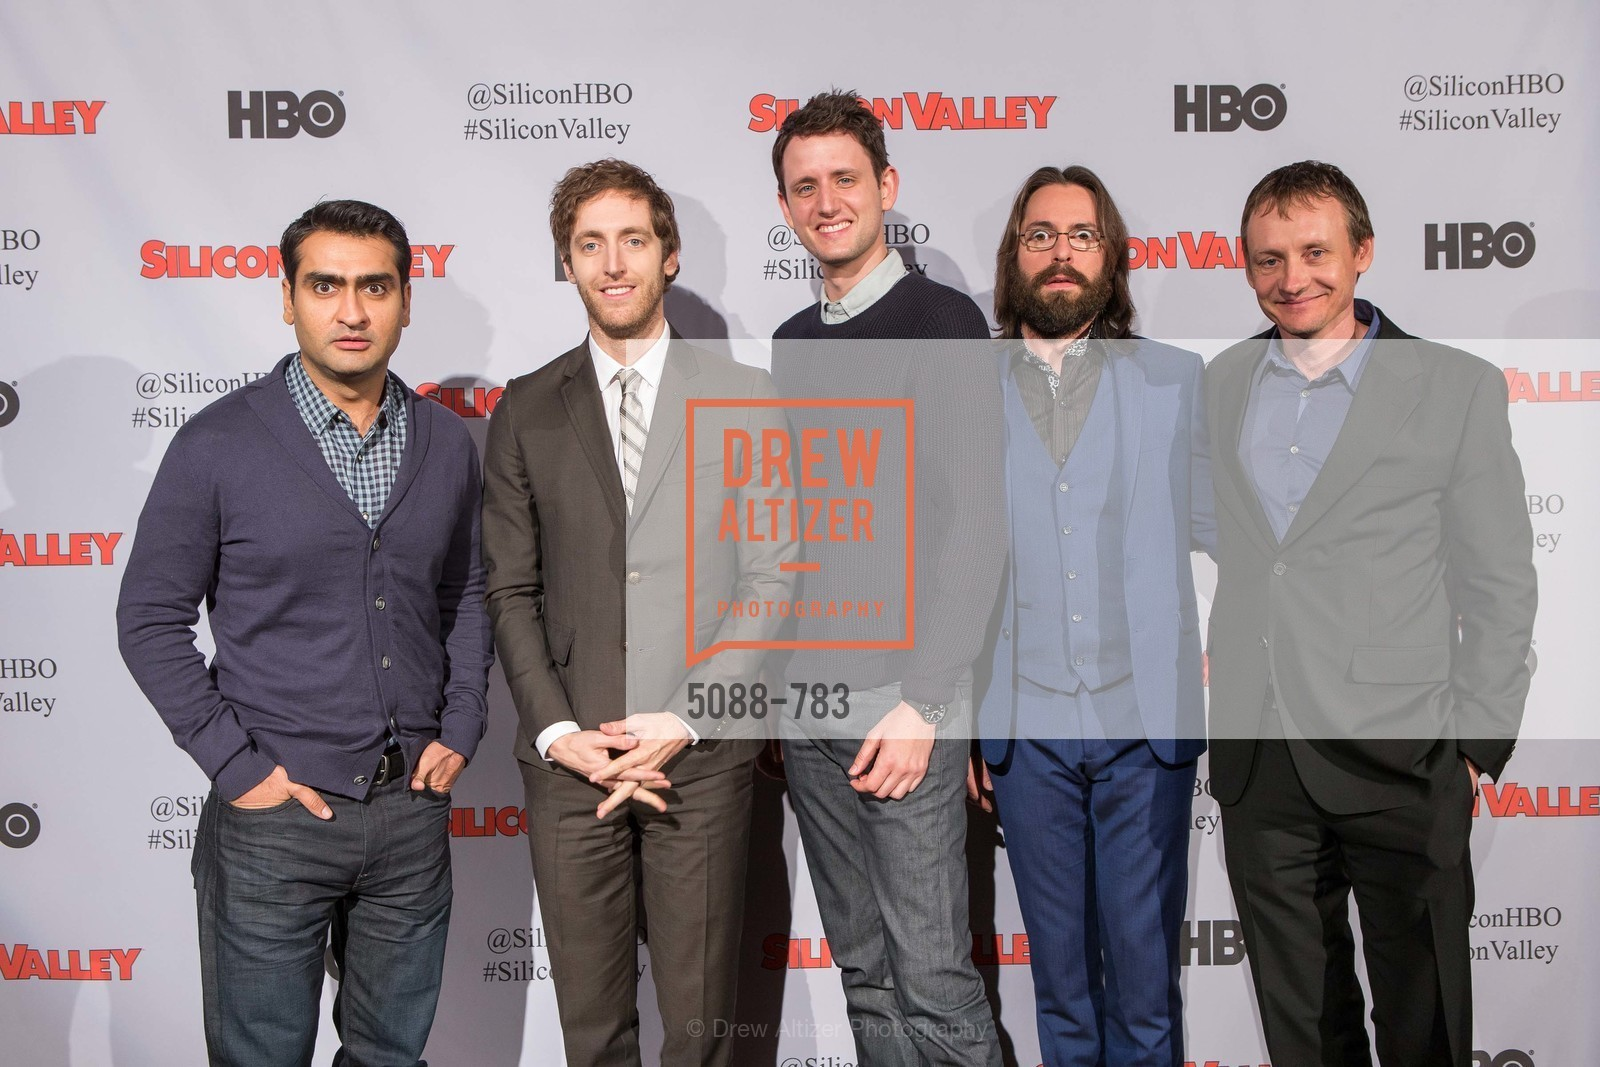 Kumail Nanjiani, Thomas Middleditch, Zach Woods, Martin Starr, Alec Berg, HBO'S SILICON VALLEY San Francisco Screening, US, April 8th, 2015,Drew Altizer, Drew Altizer Photography, full-service agency, private events, San Francisco photographer, photographer california